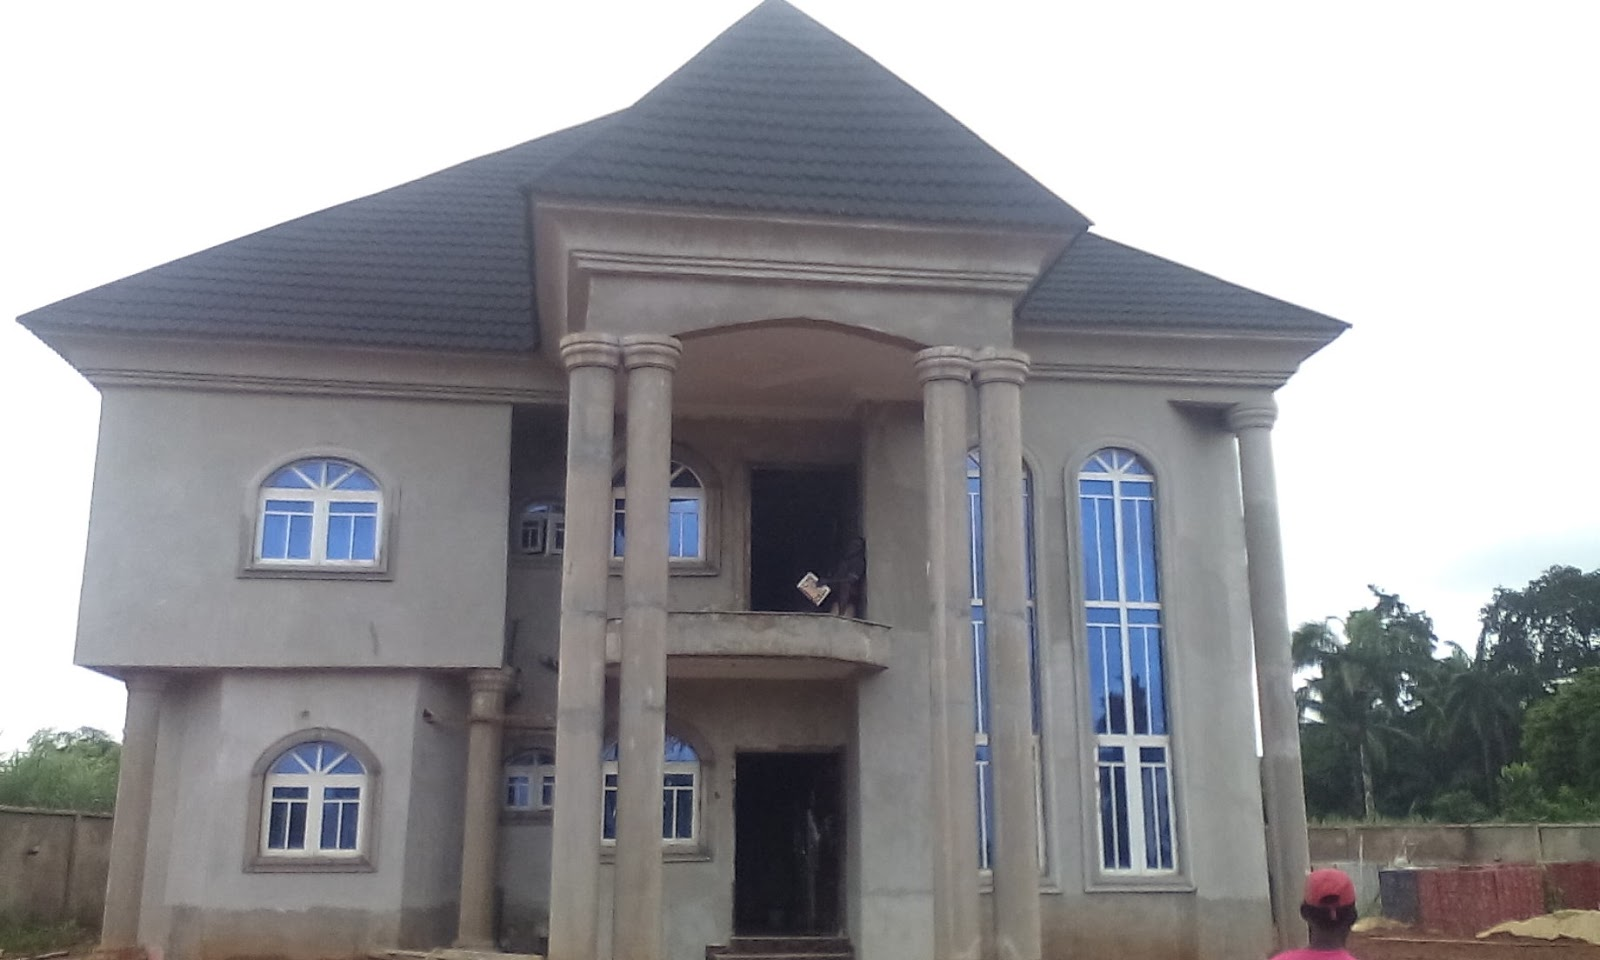 Joe construction company: A 7 Bedrooms Duplex